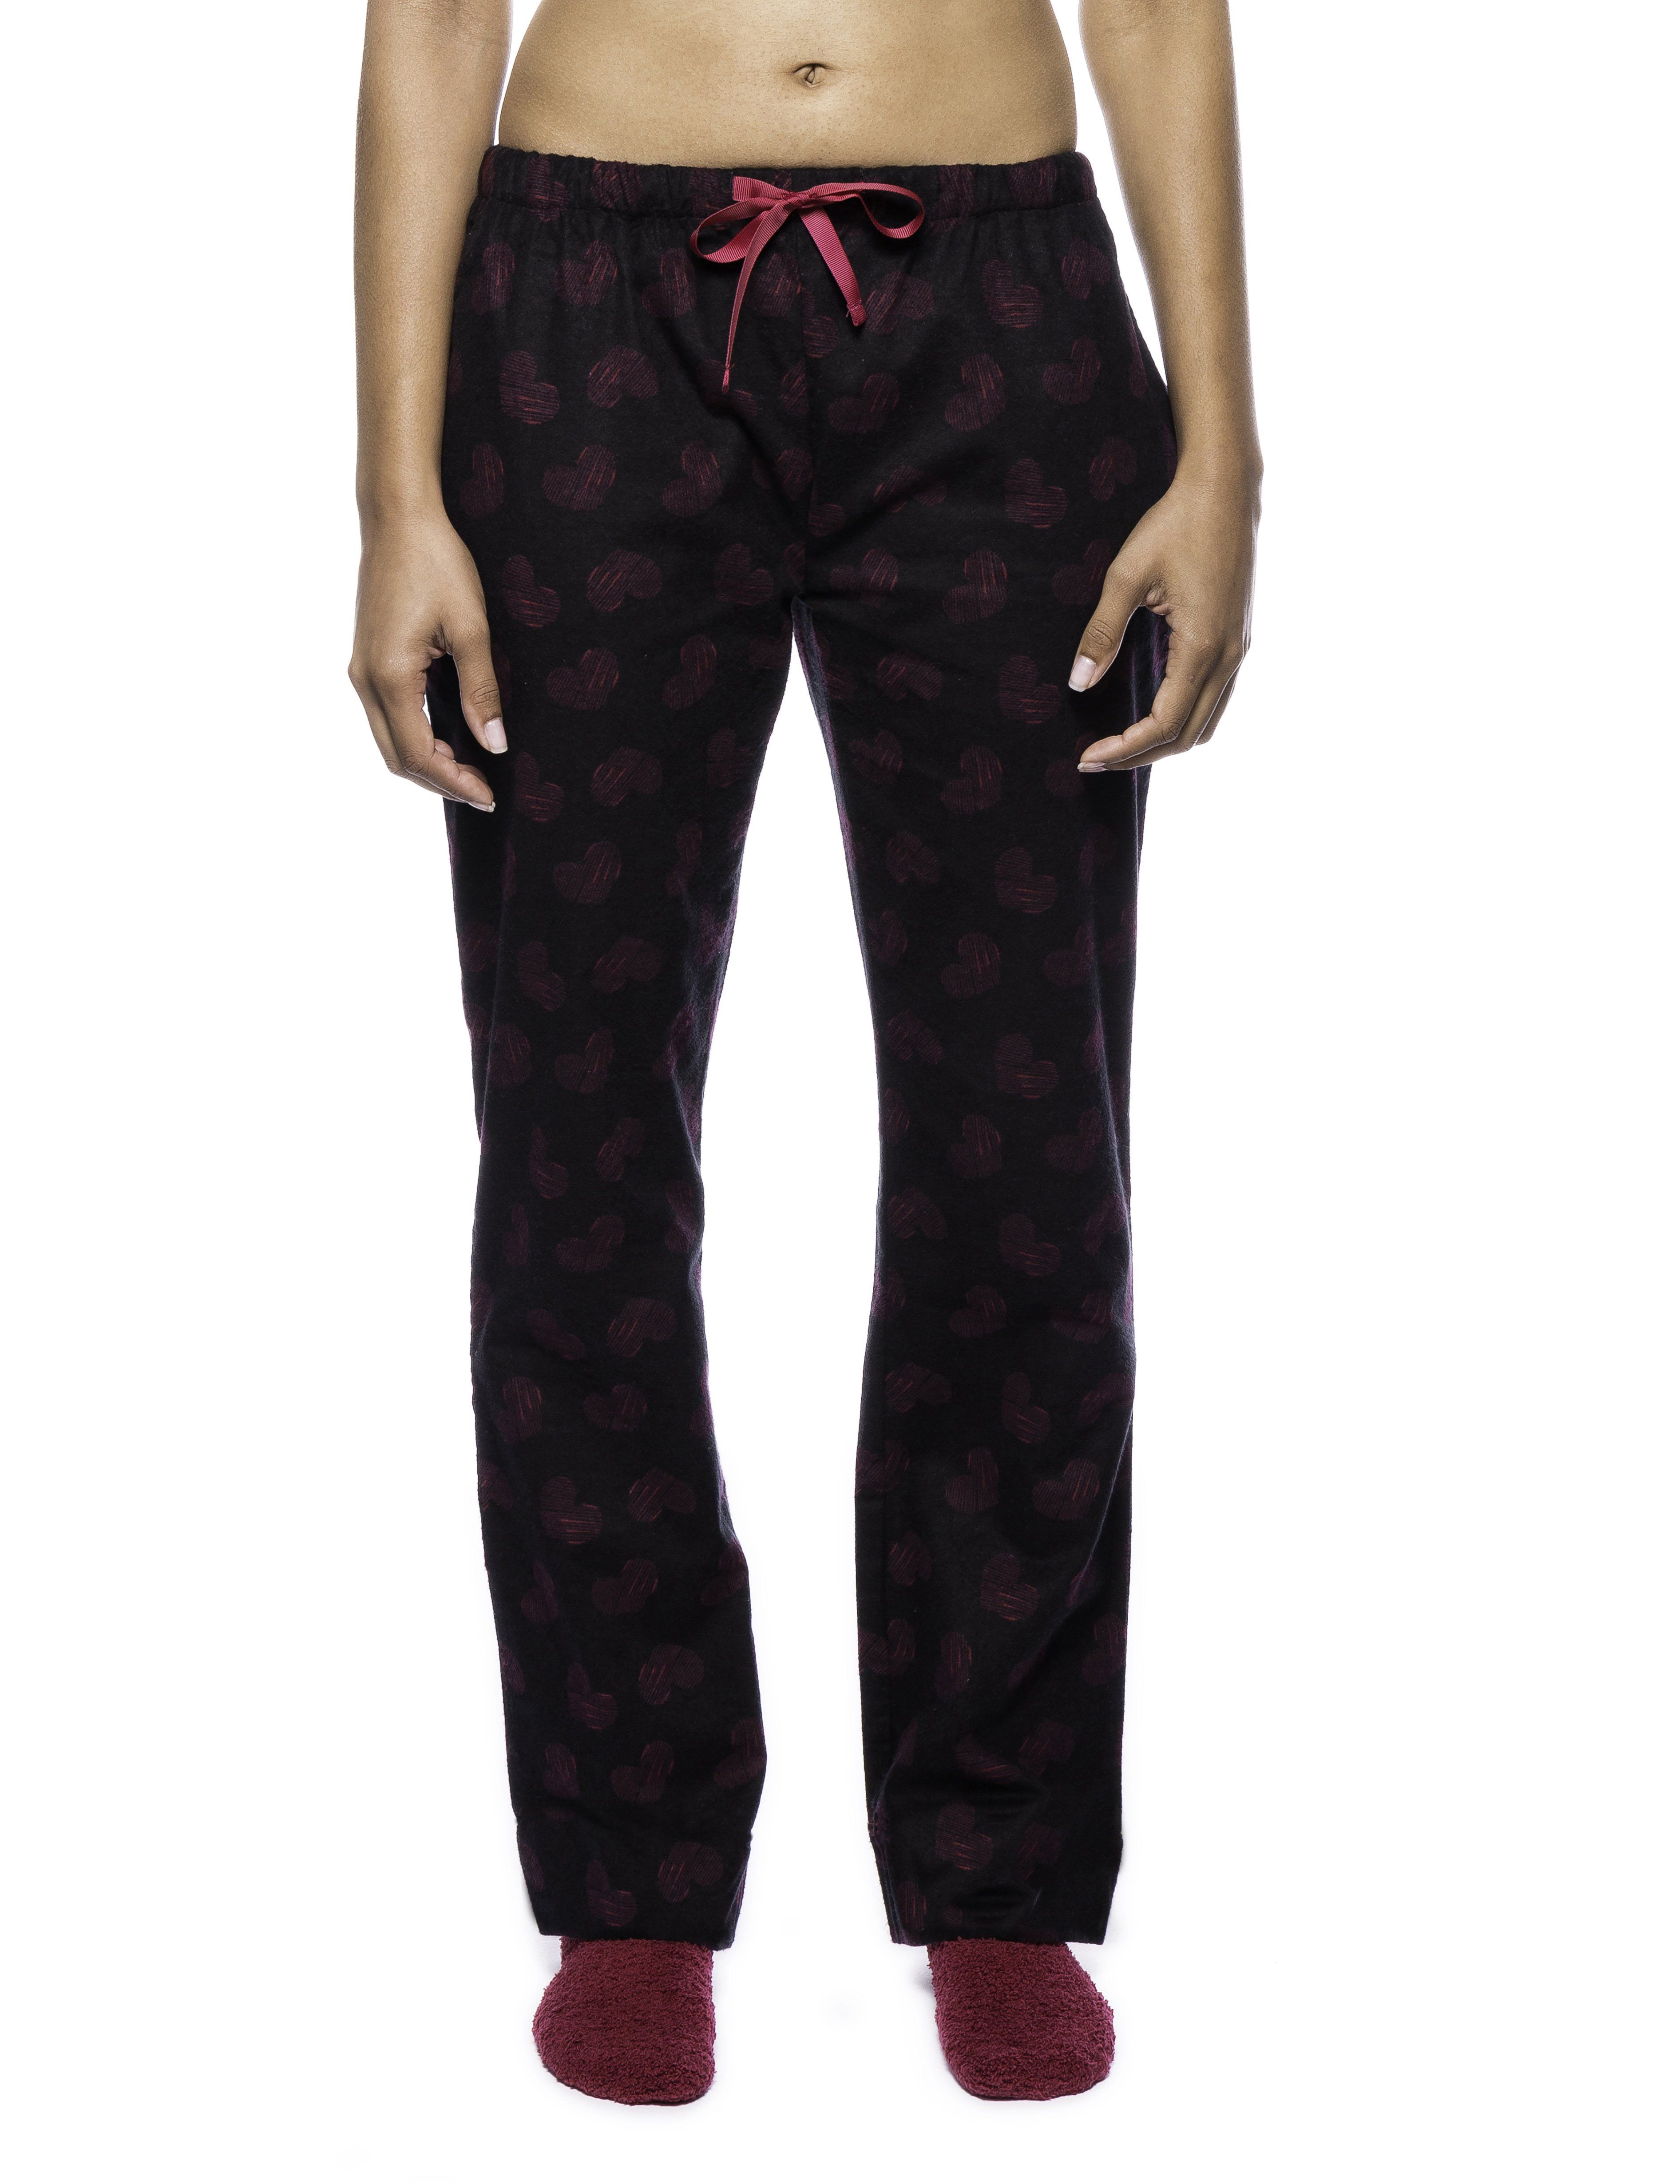 Womens Premium 100% Cotton Flannel Lounge Pants with Matching Socks